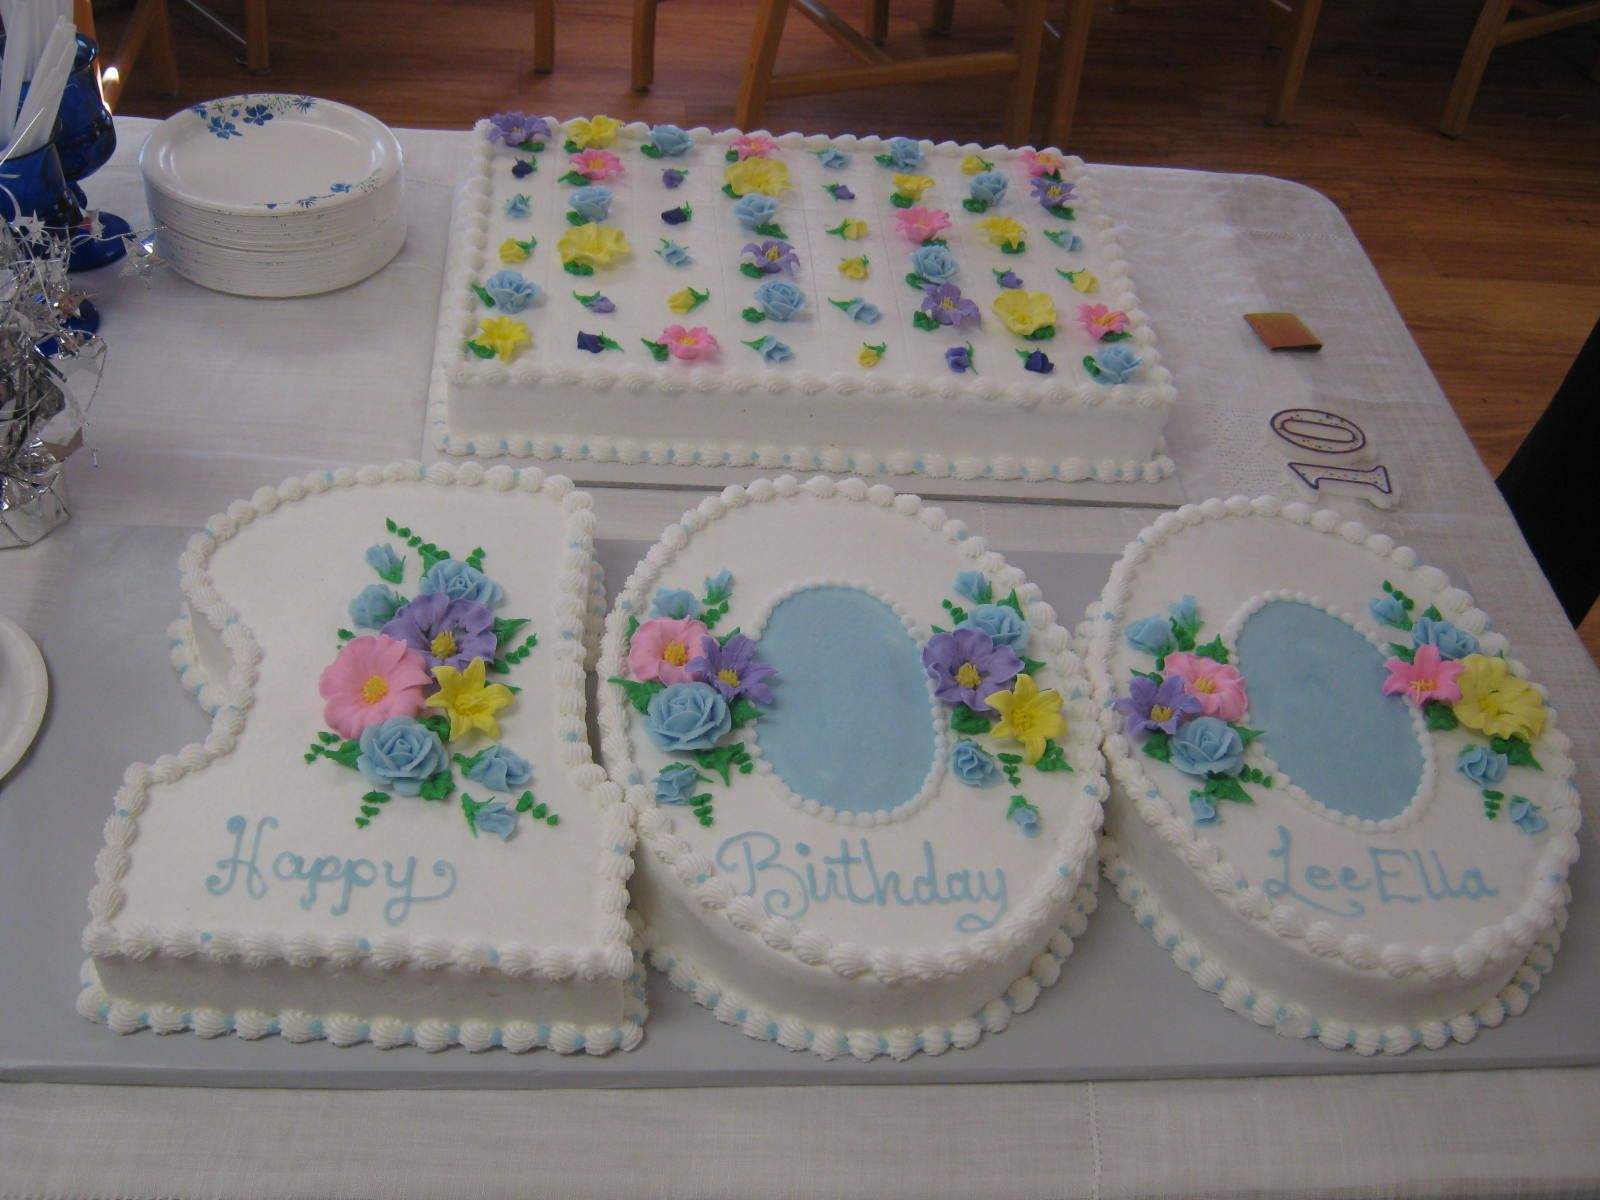 Our dear friend Lee Ella Moores 100th birthday cake Isnt it